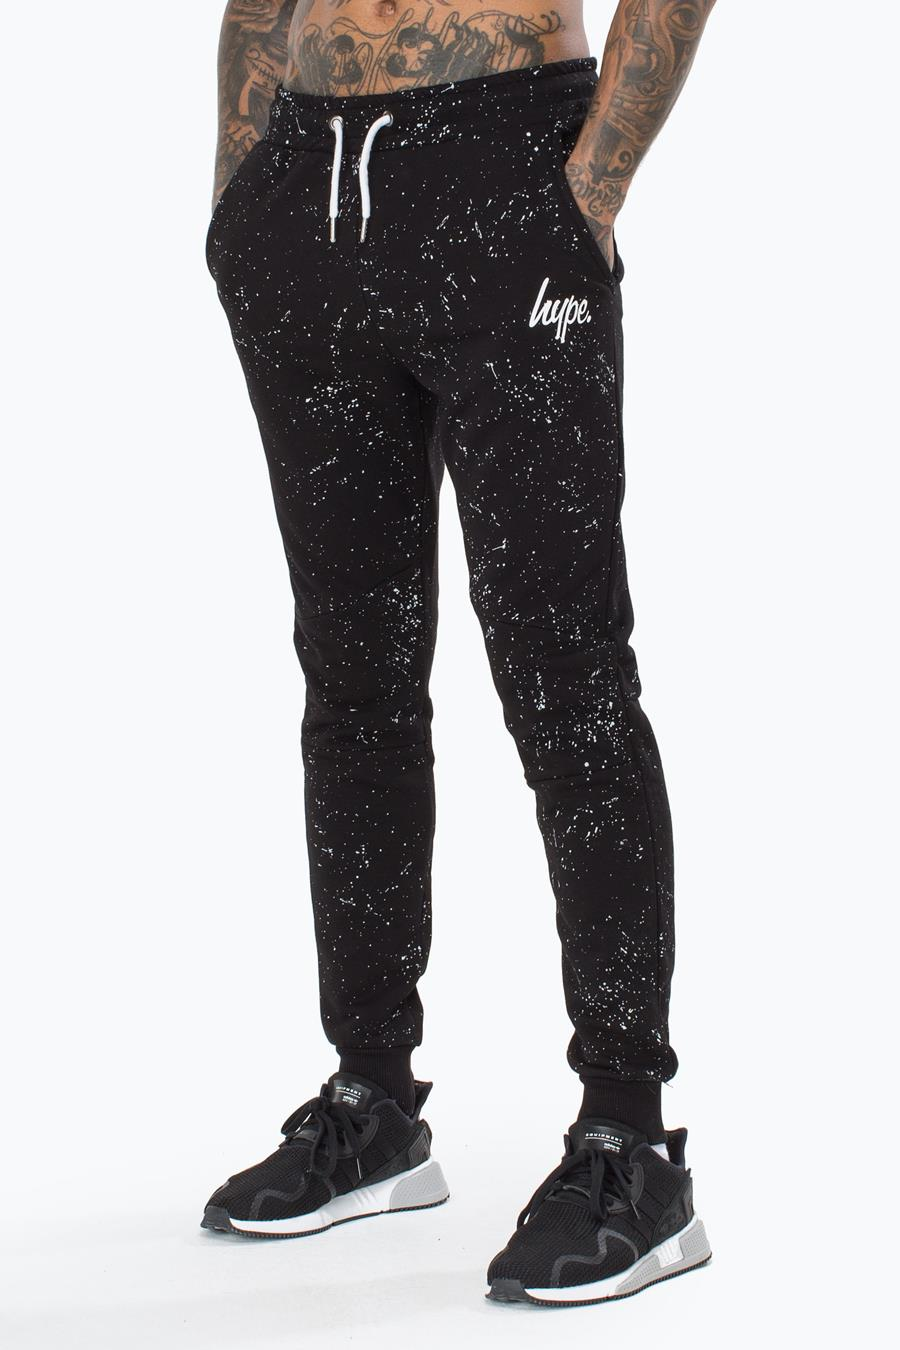 Hype Aop Speckle Mens Black Joggers | Size XX-Small